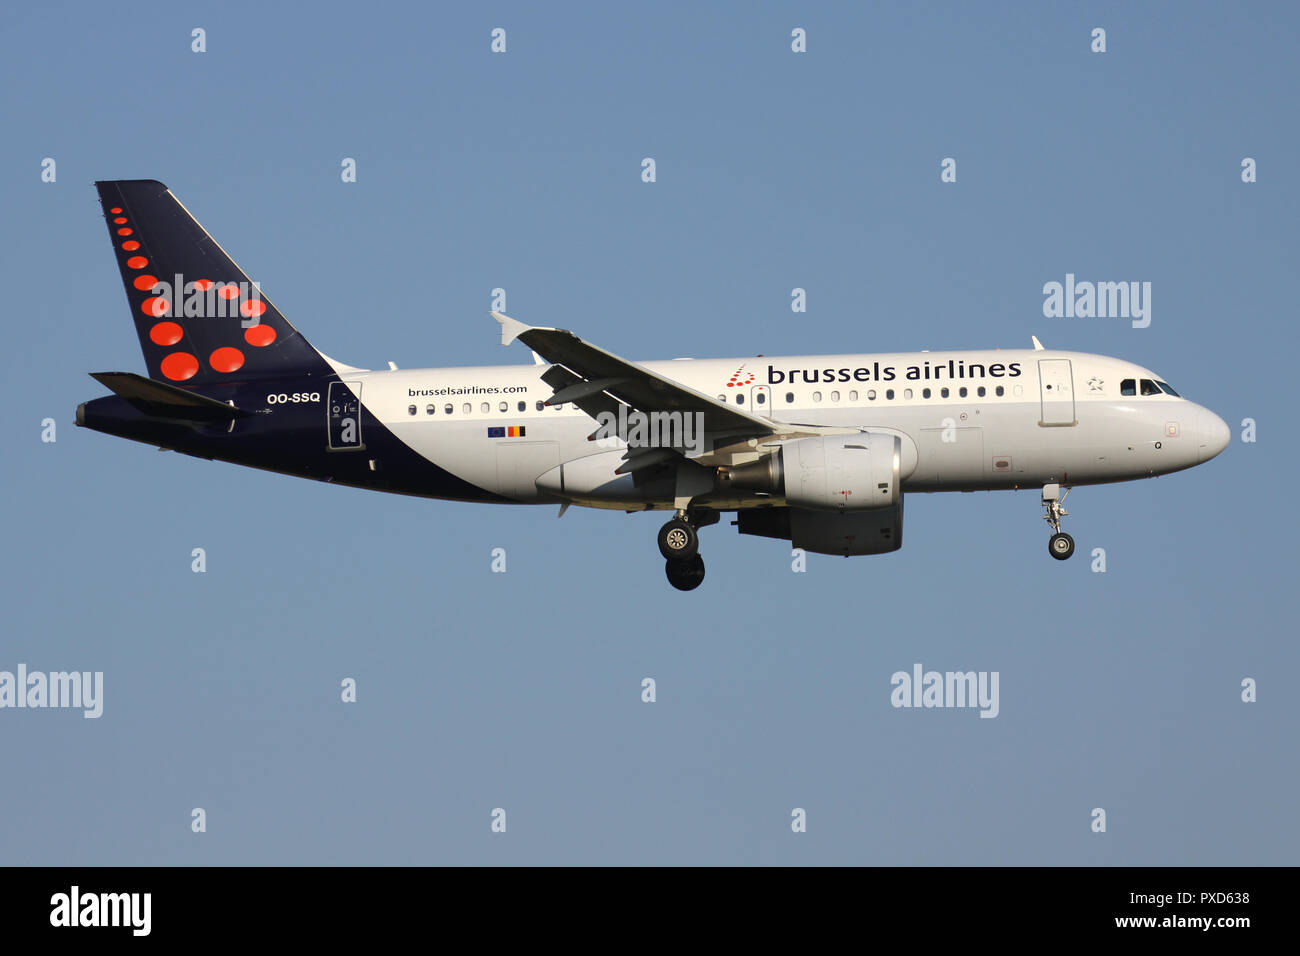 Belgian Brussels Airlines Airbus A319-100 with registration OO-SSQ on short final for runway 01 of Brussels Airport. - Stock Image